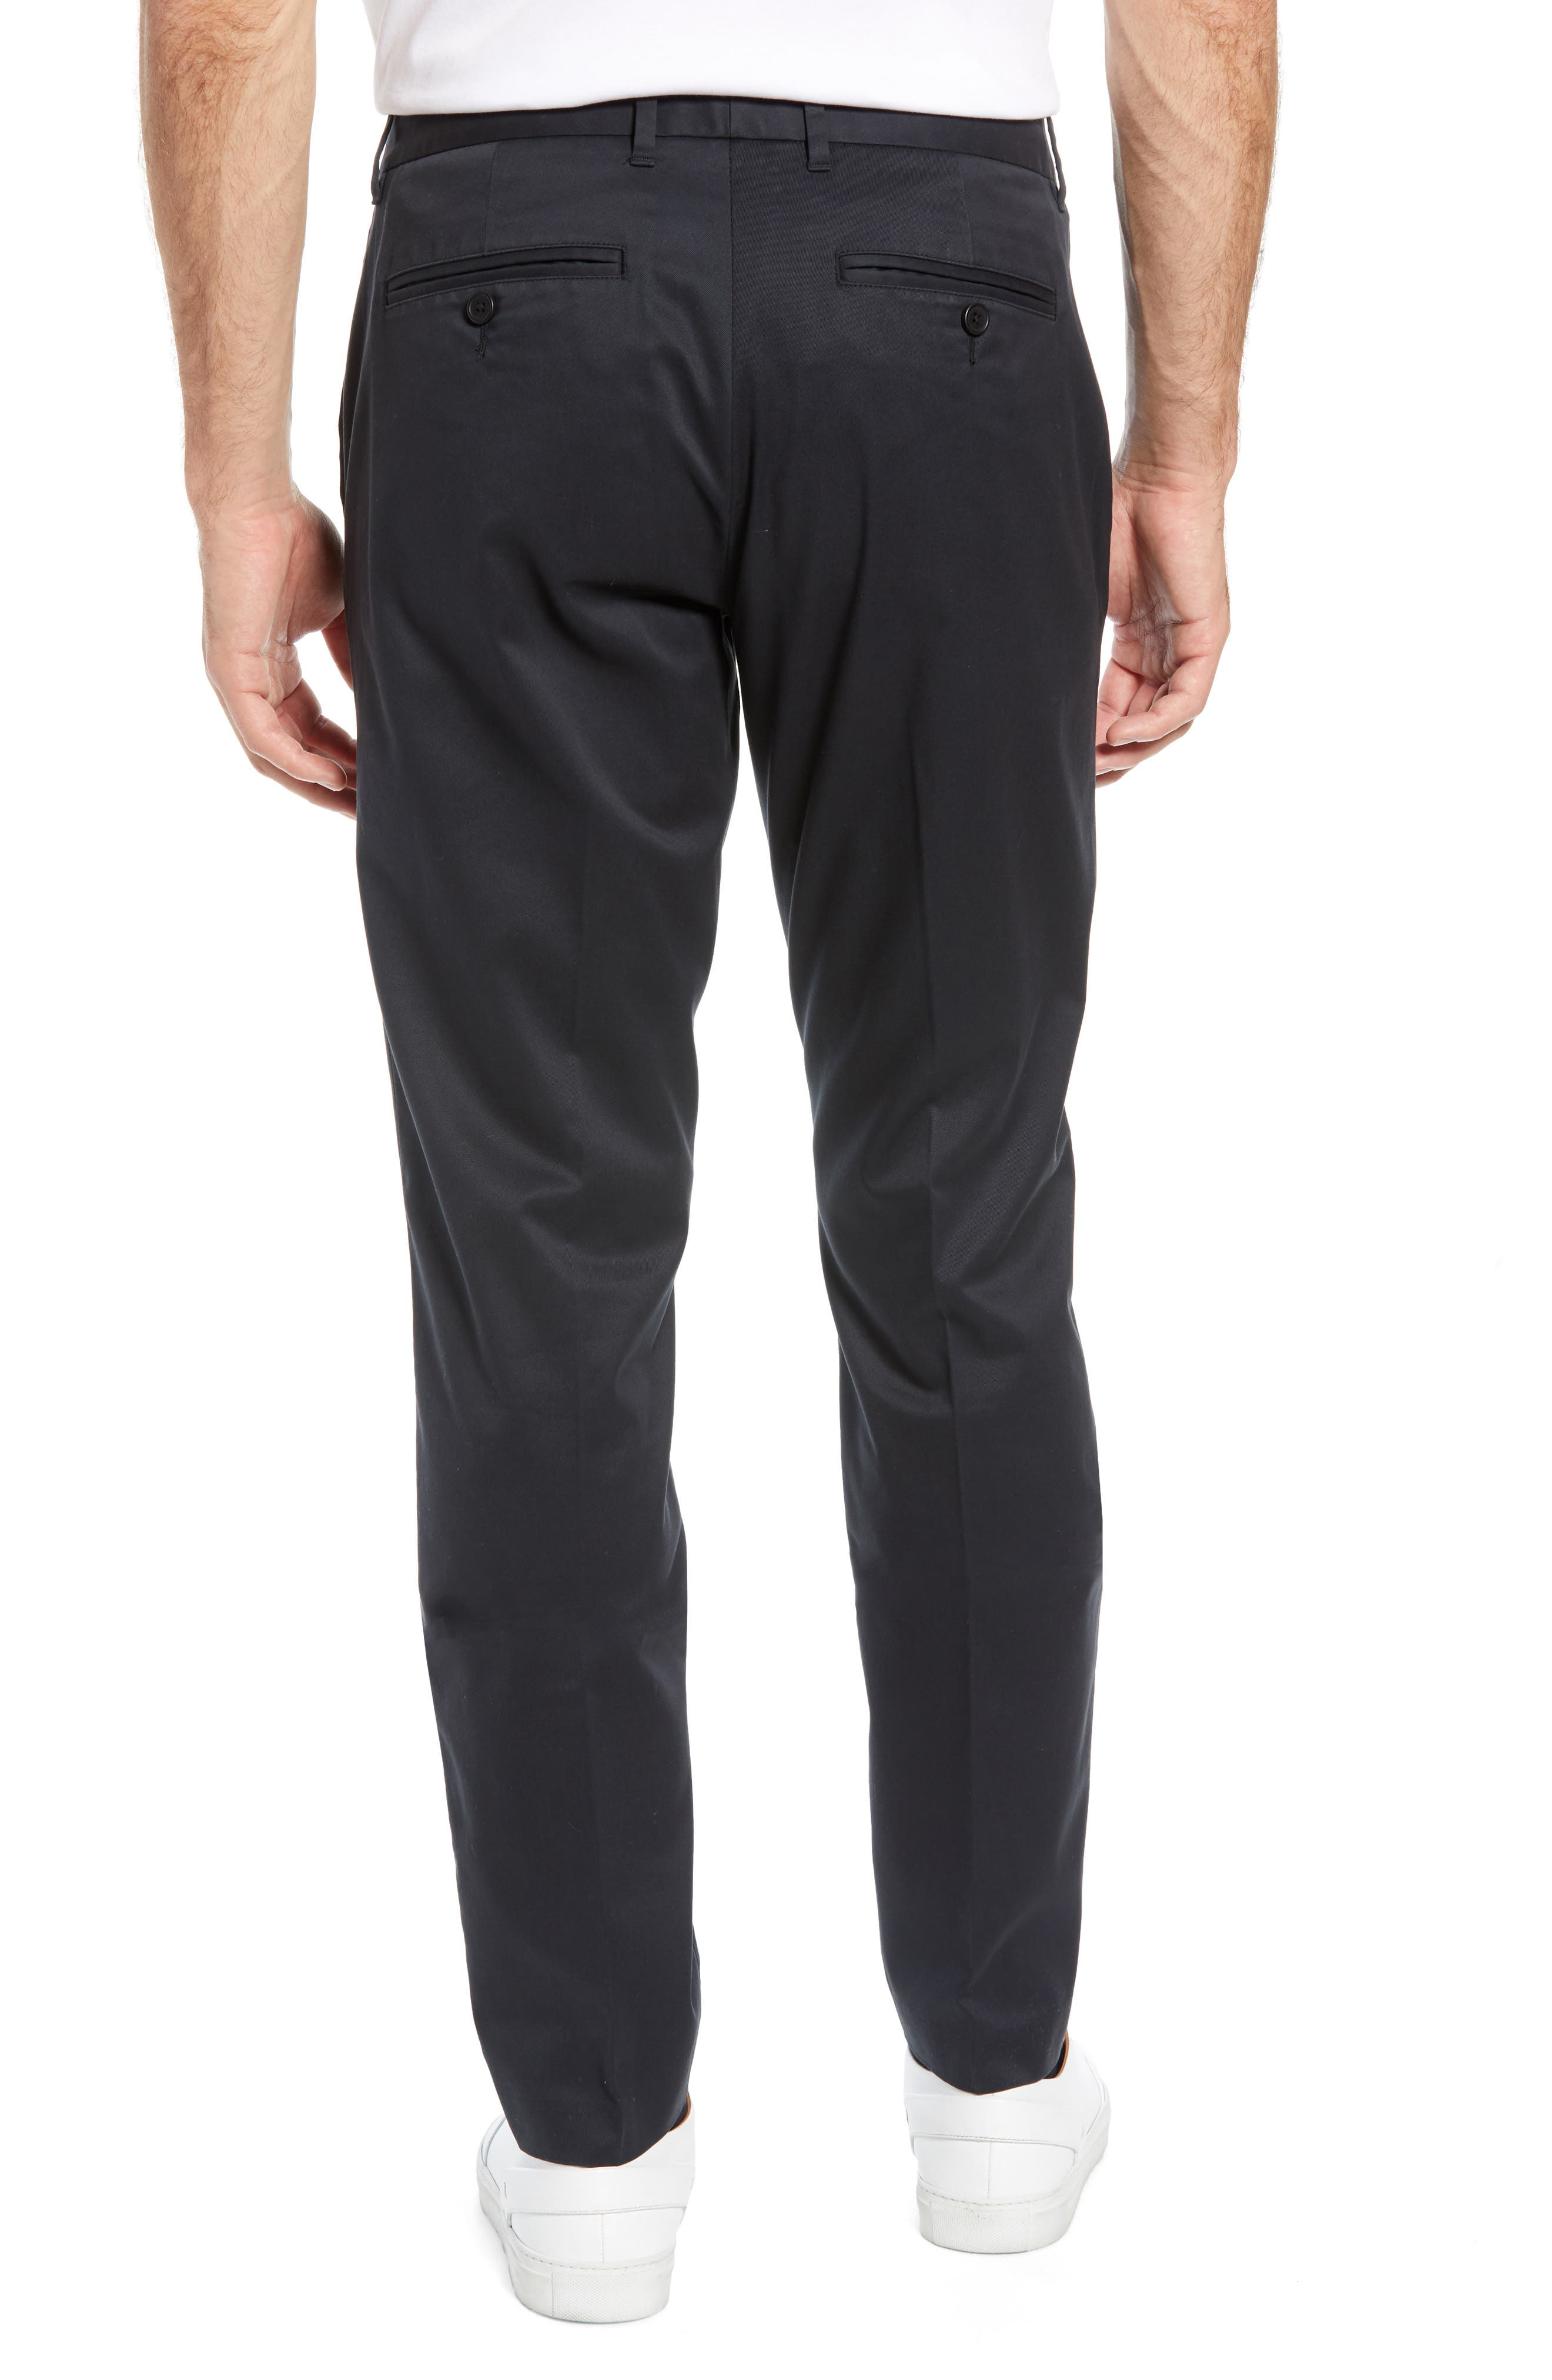 BONOBOS, Weekday Warrior Athletic Fit Stretch Dress Pants, Alternate thumbnail 2, color, TUESDAY BLACK